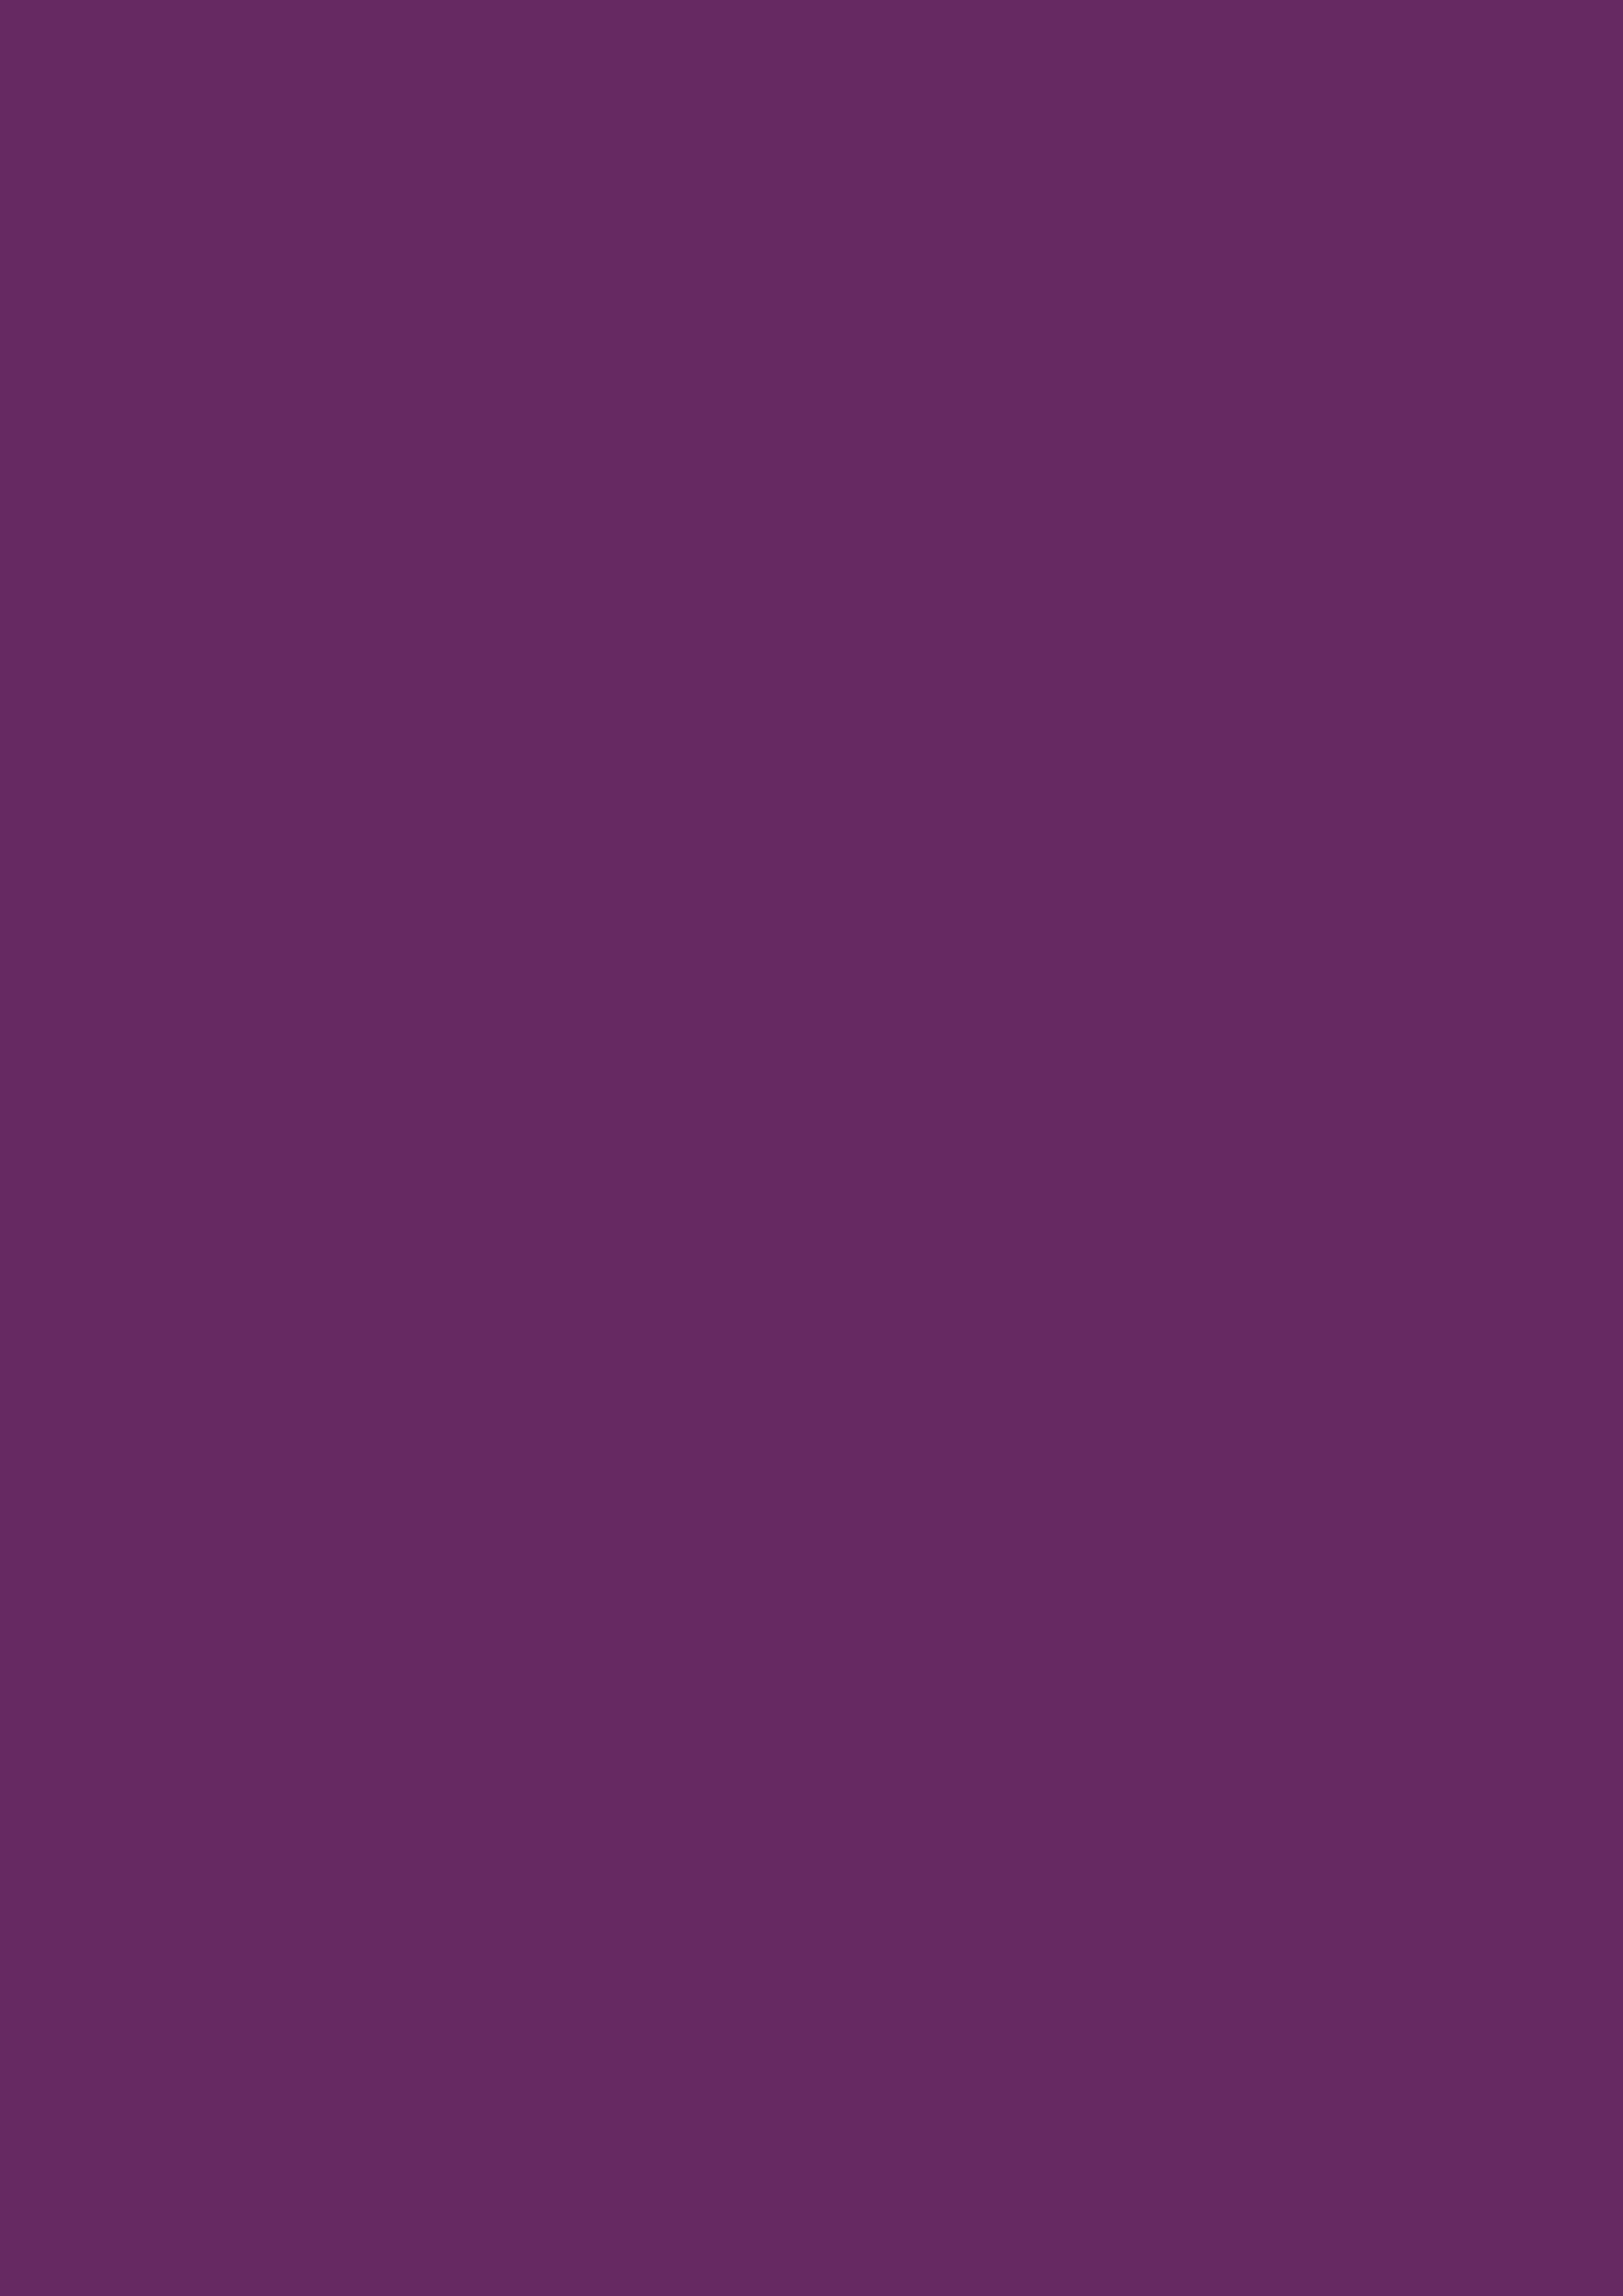 2480x3508 Palatinate Purple Solid Color Background